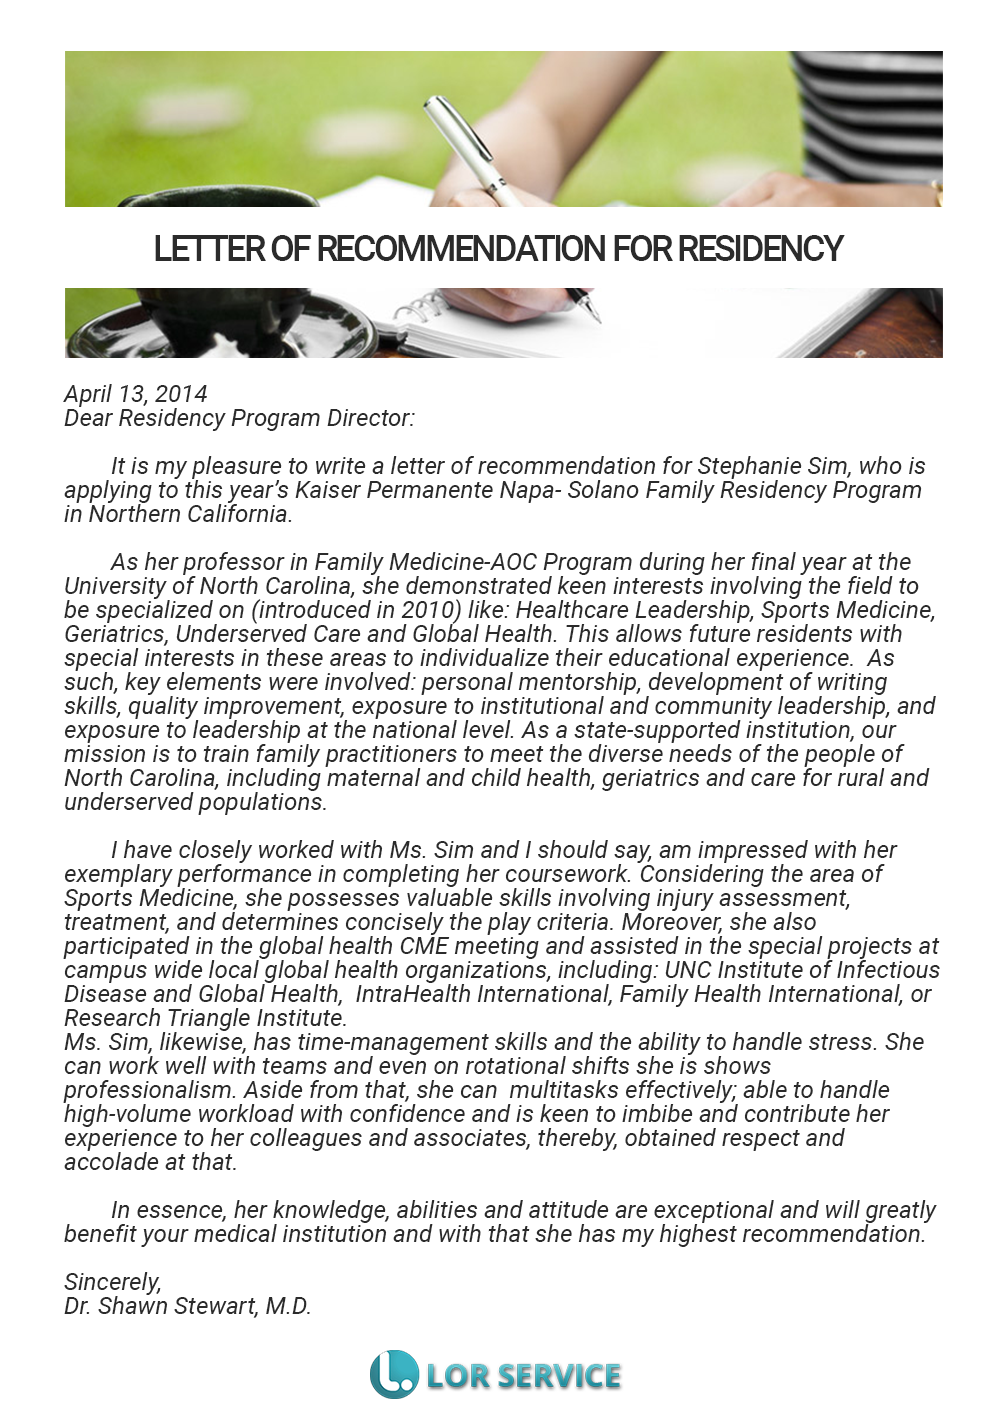 residency letter of recommendation sample medical lor